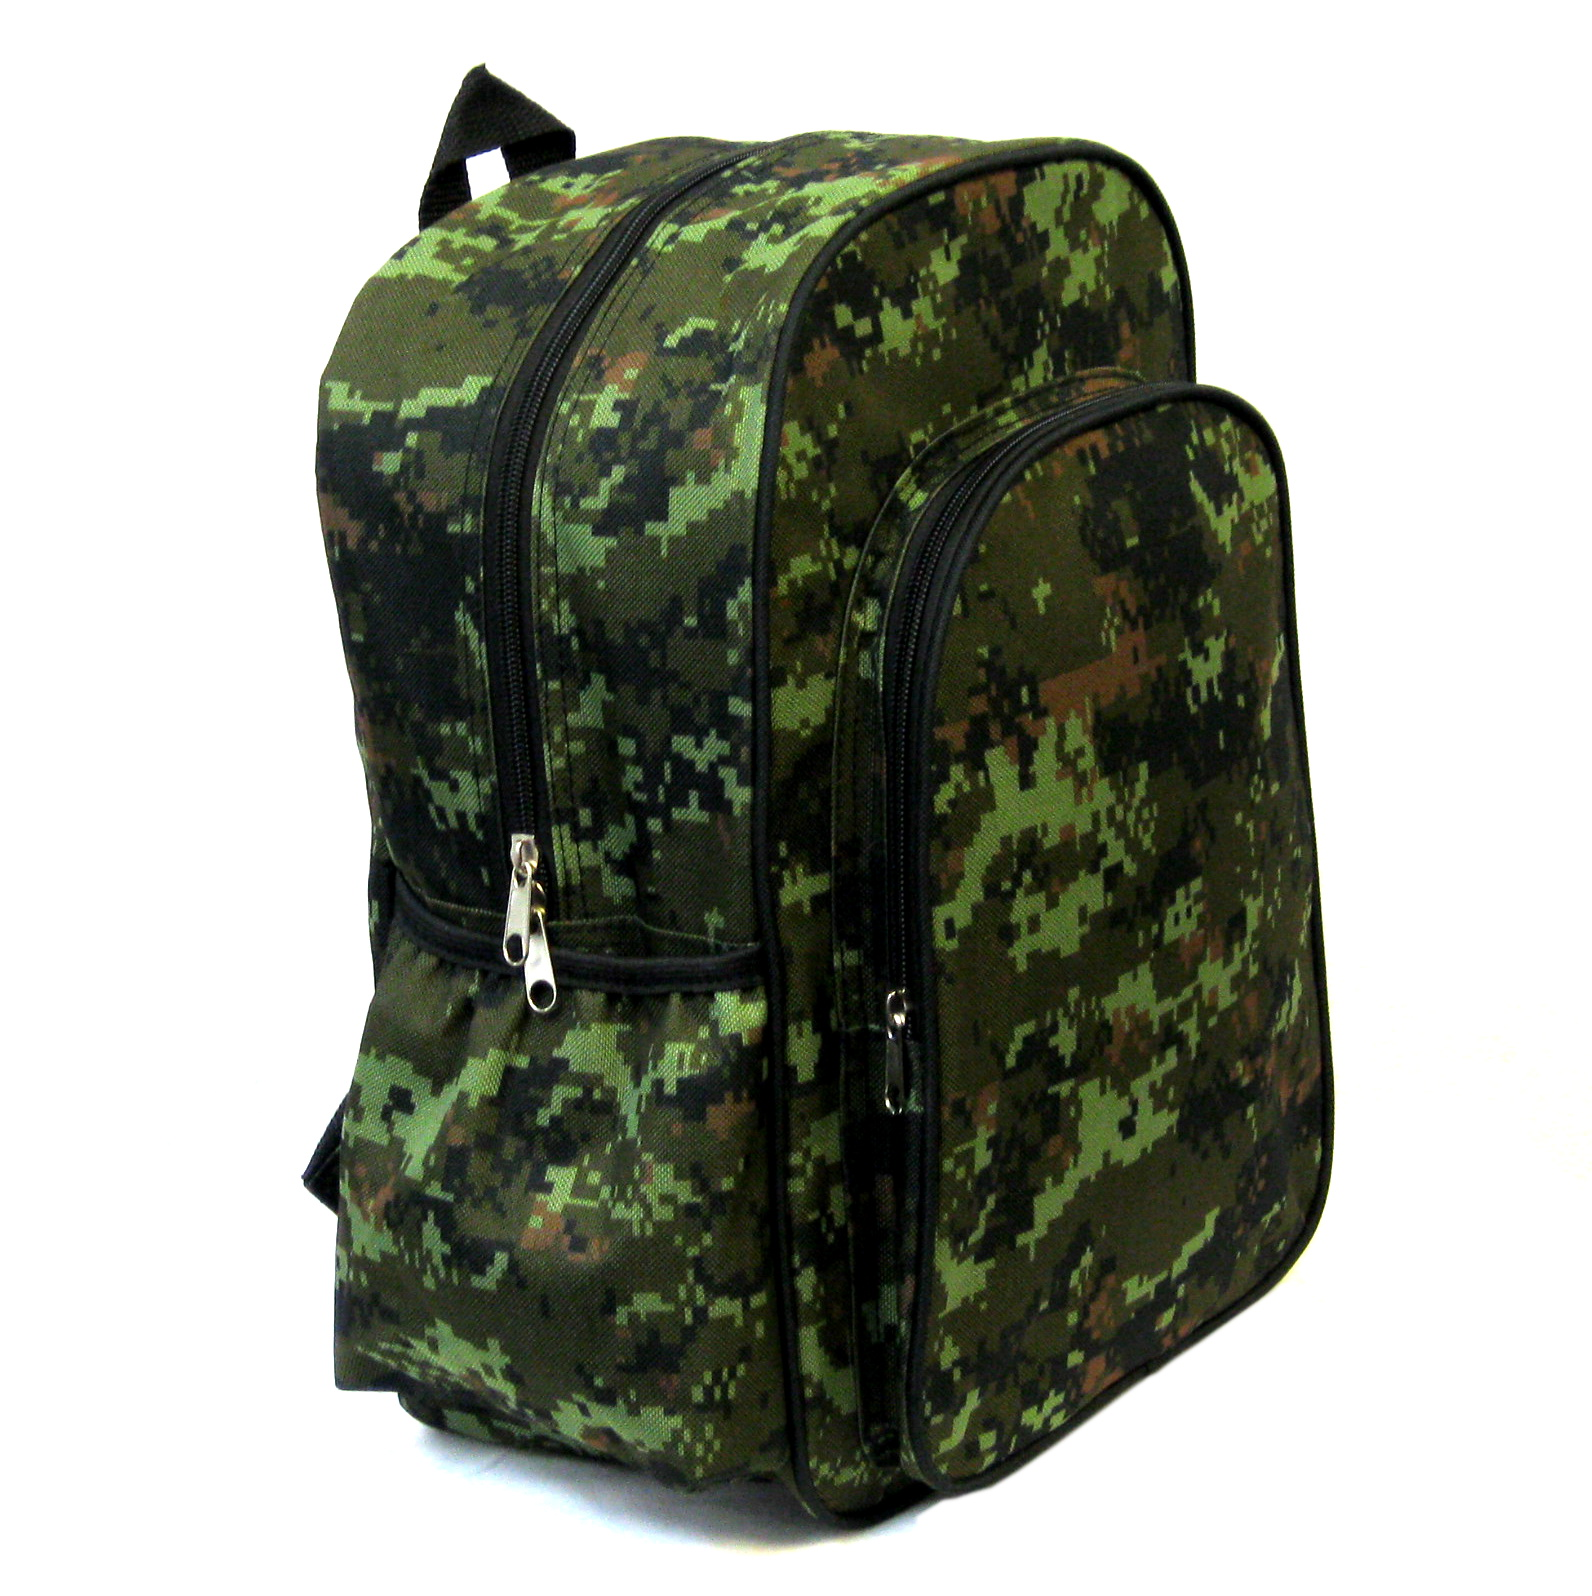 "Kids Backpack 14"" Bag Woodland Camo for school, hiking, camping, travel, boys"